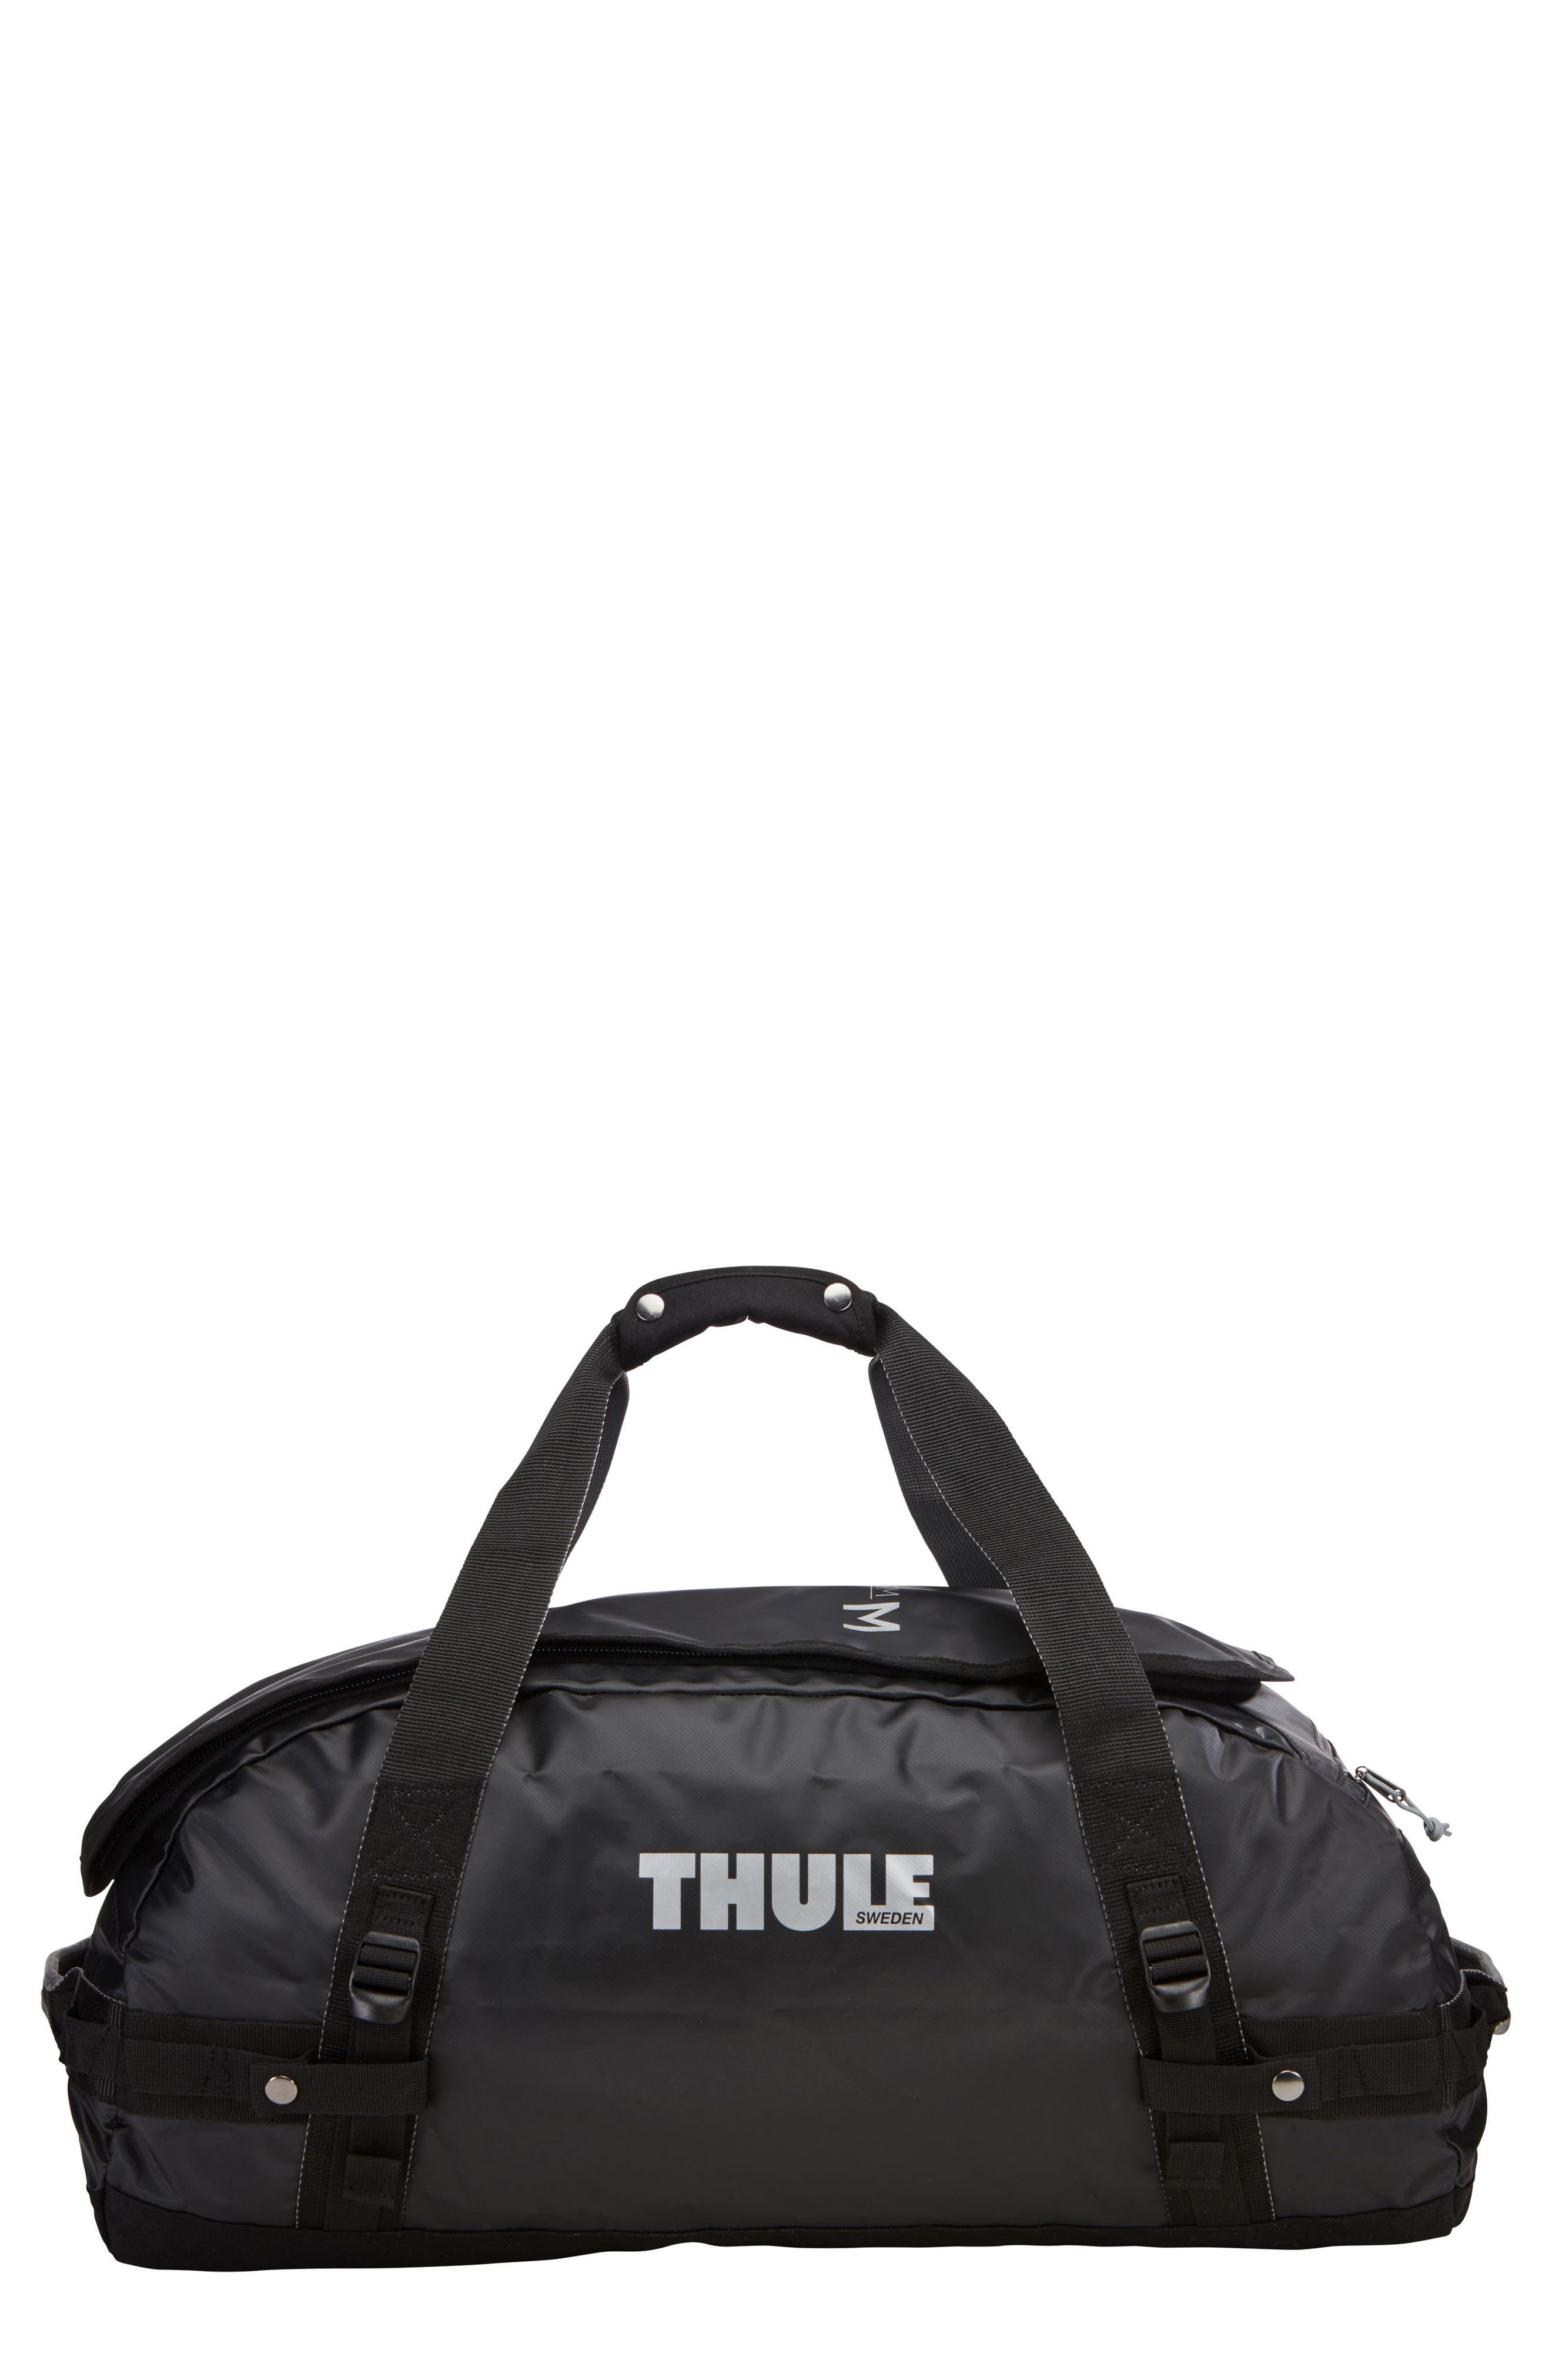 Chasm 70-Liter Convertible Duffel Bag,                             Main thumbnail 1, color,                             BLACK